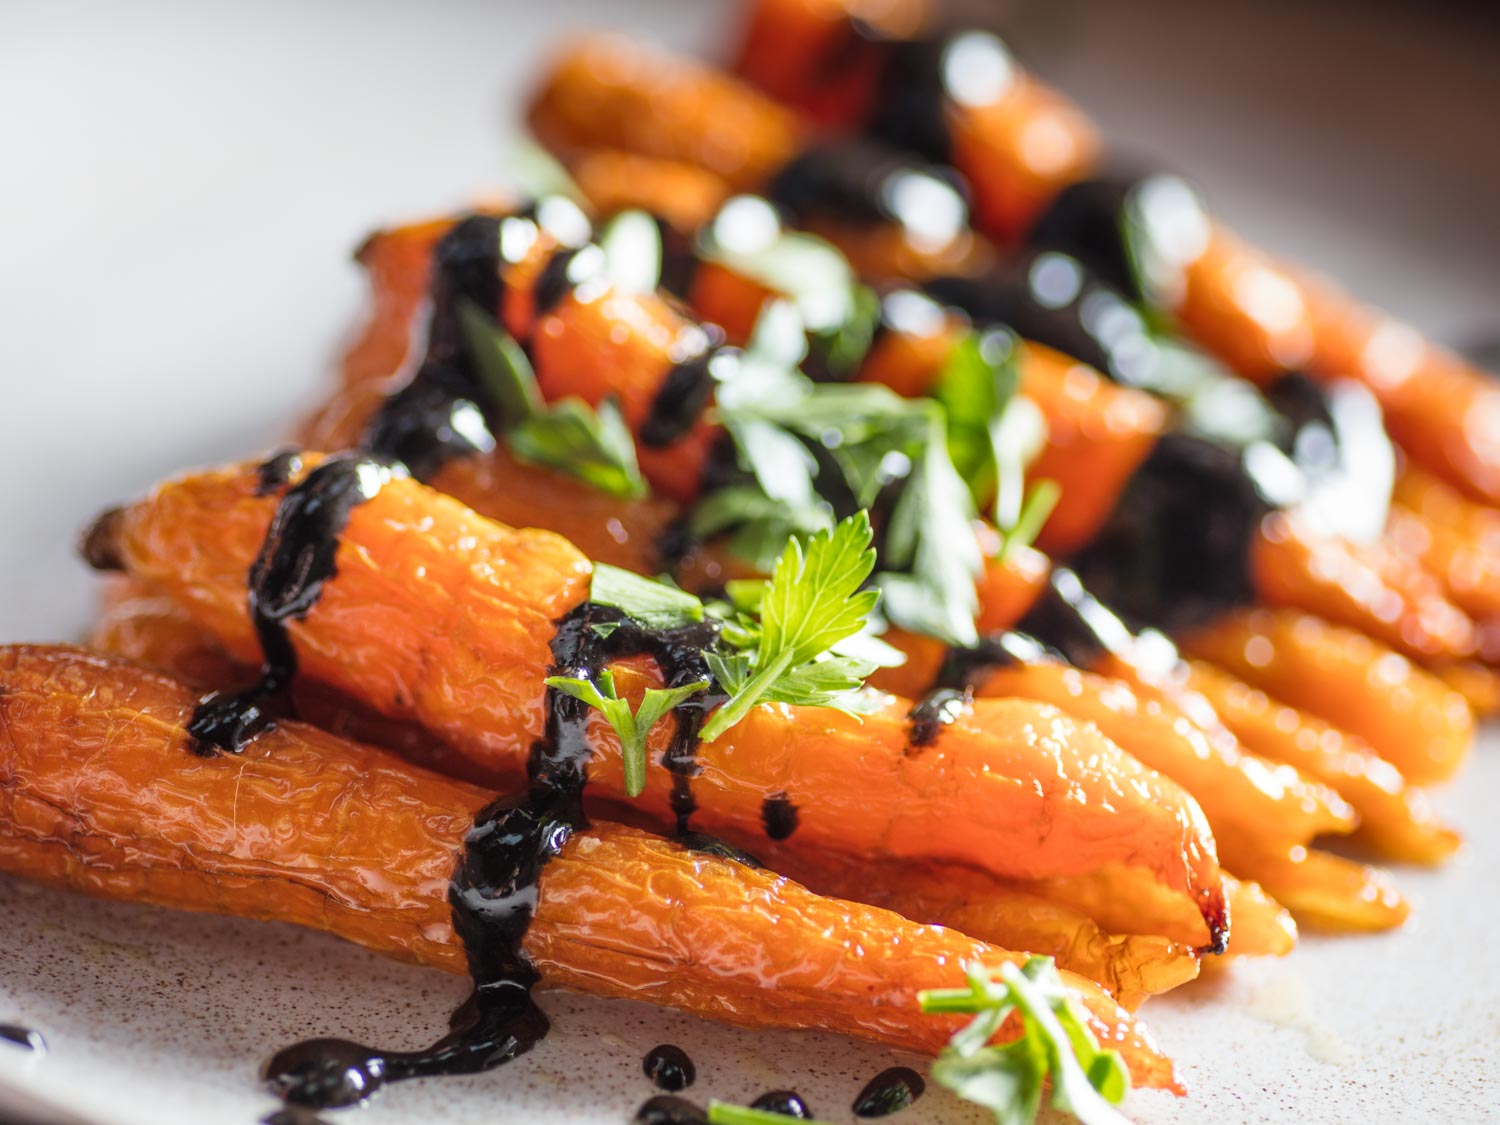 Roasted Carrots With Black Sesame Dressing